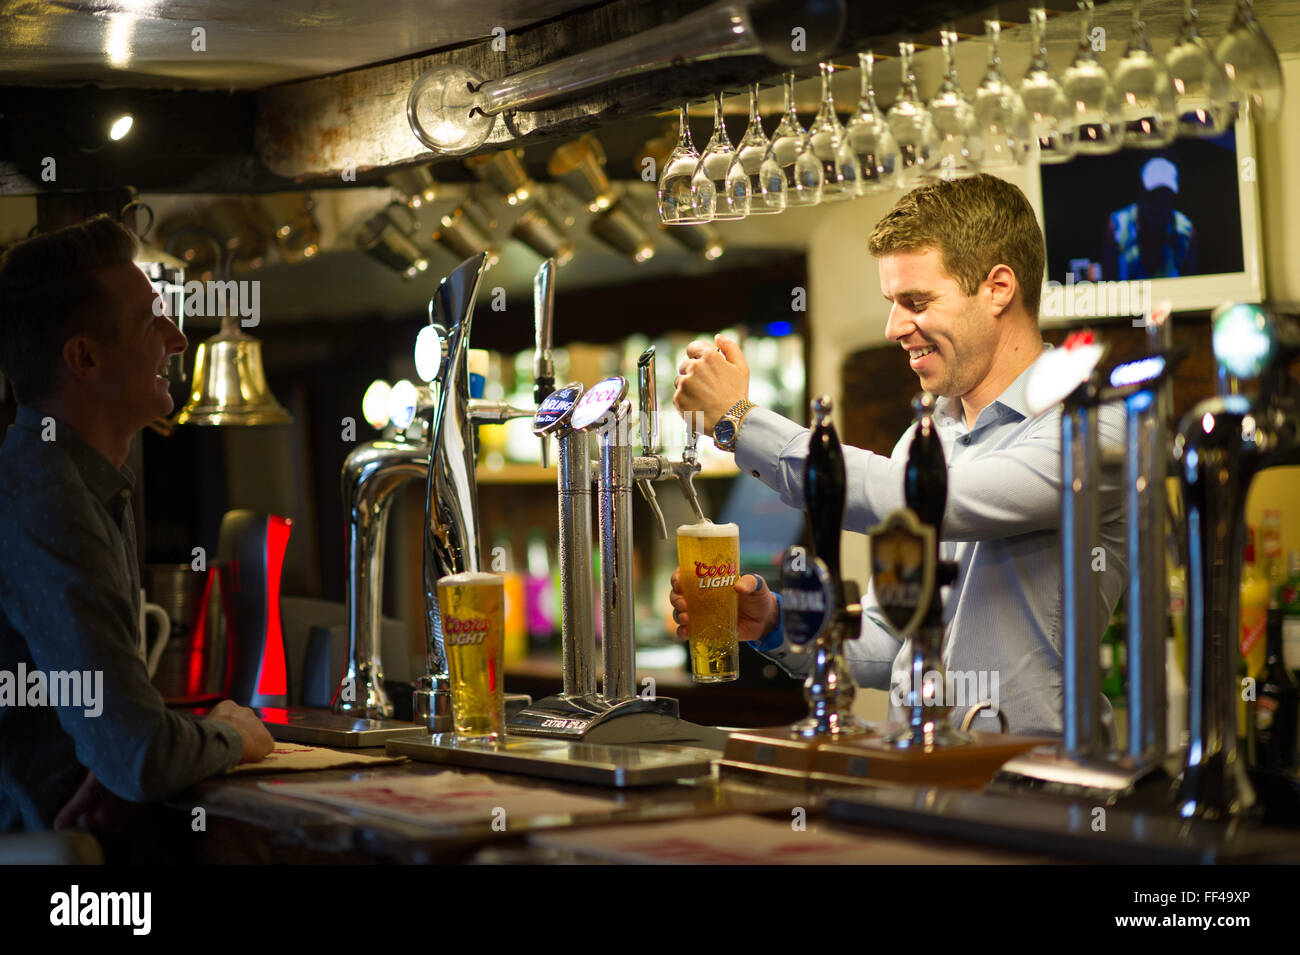 A barman pulling a pint in a traditional English pub - Stock Image